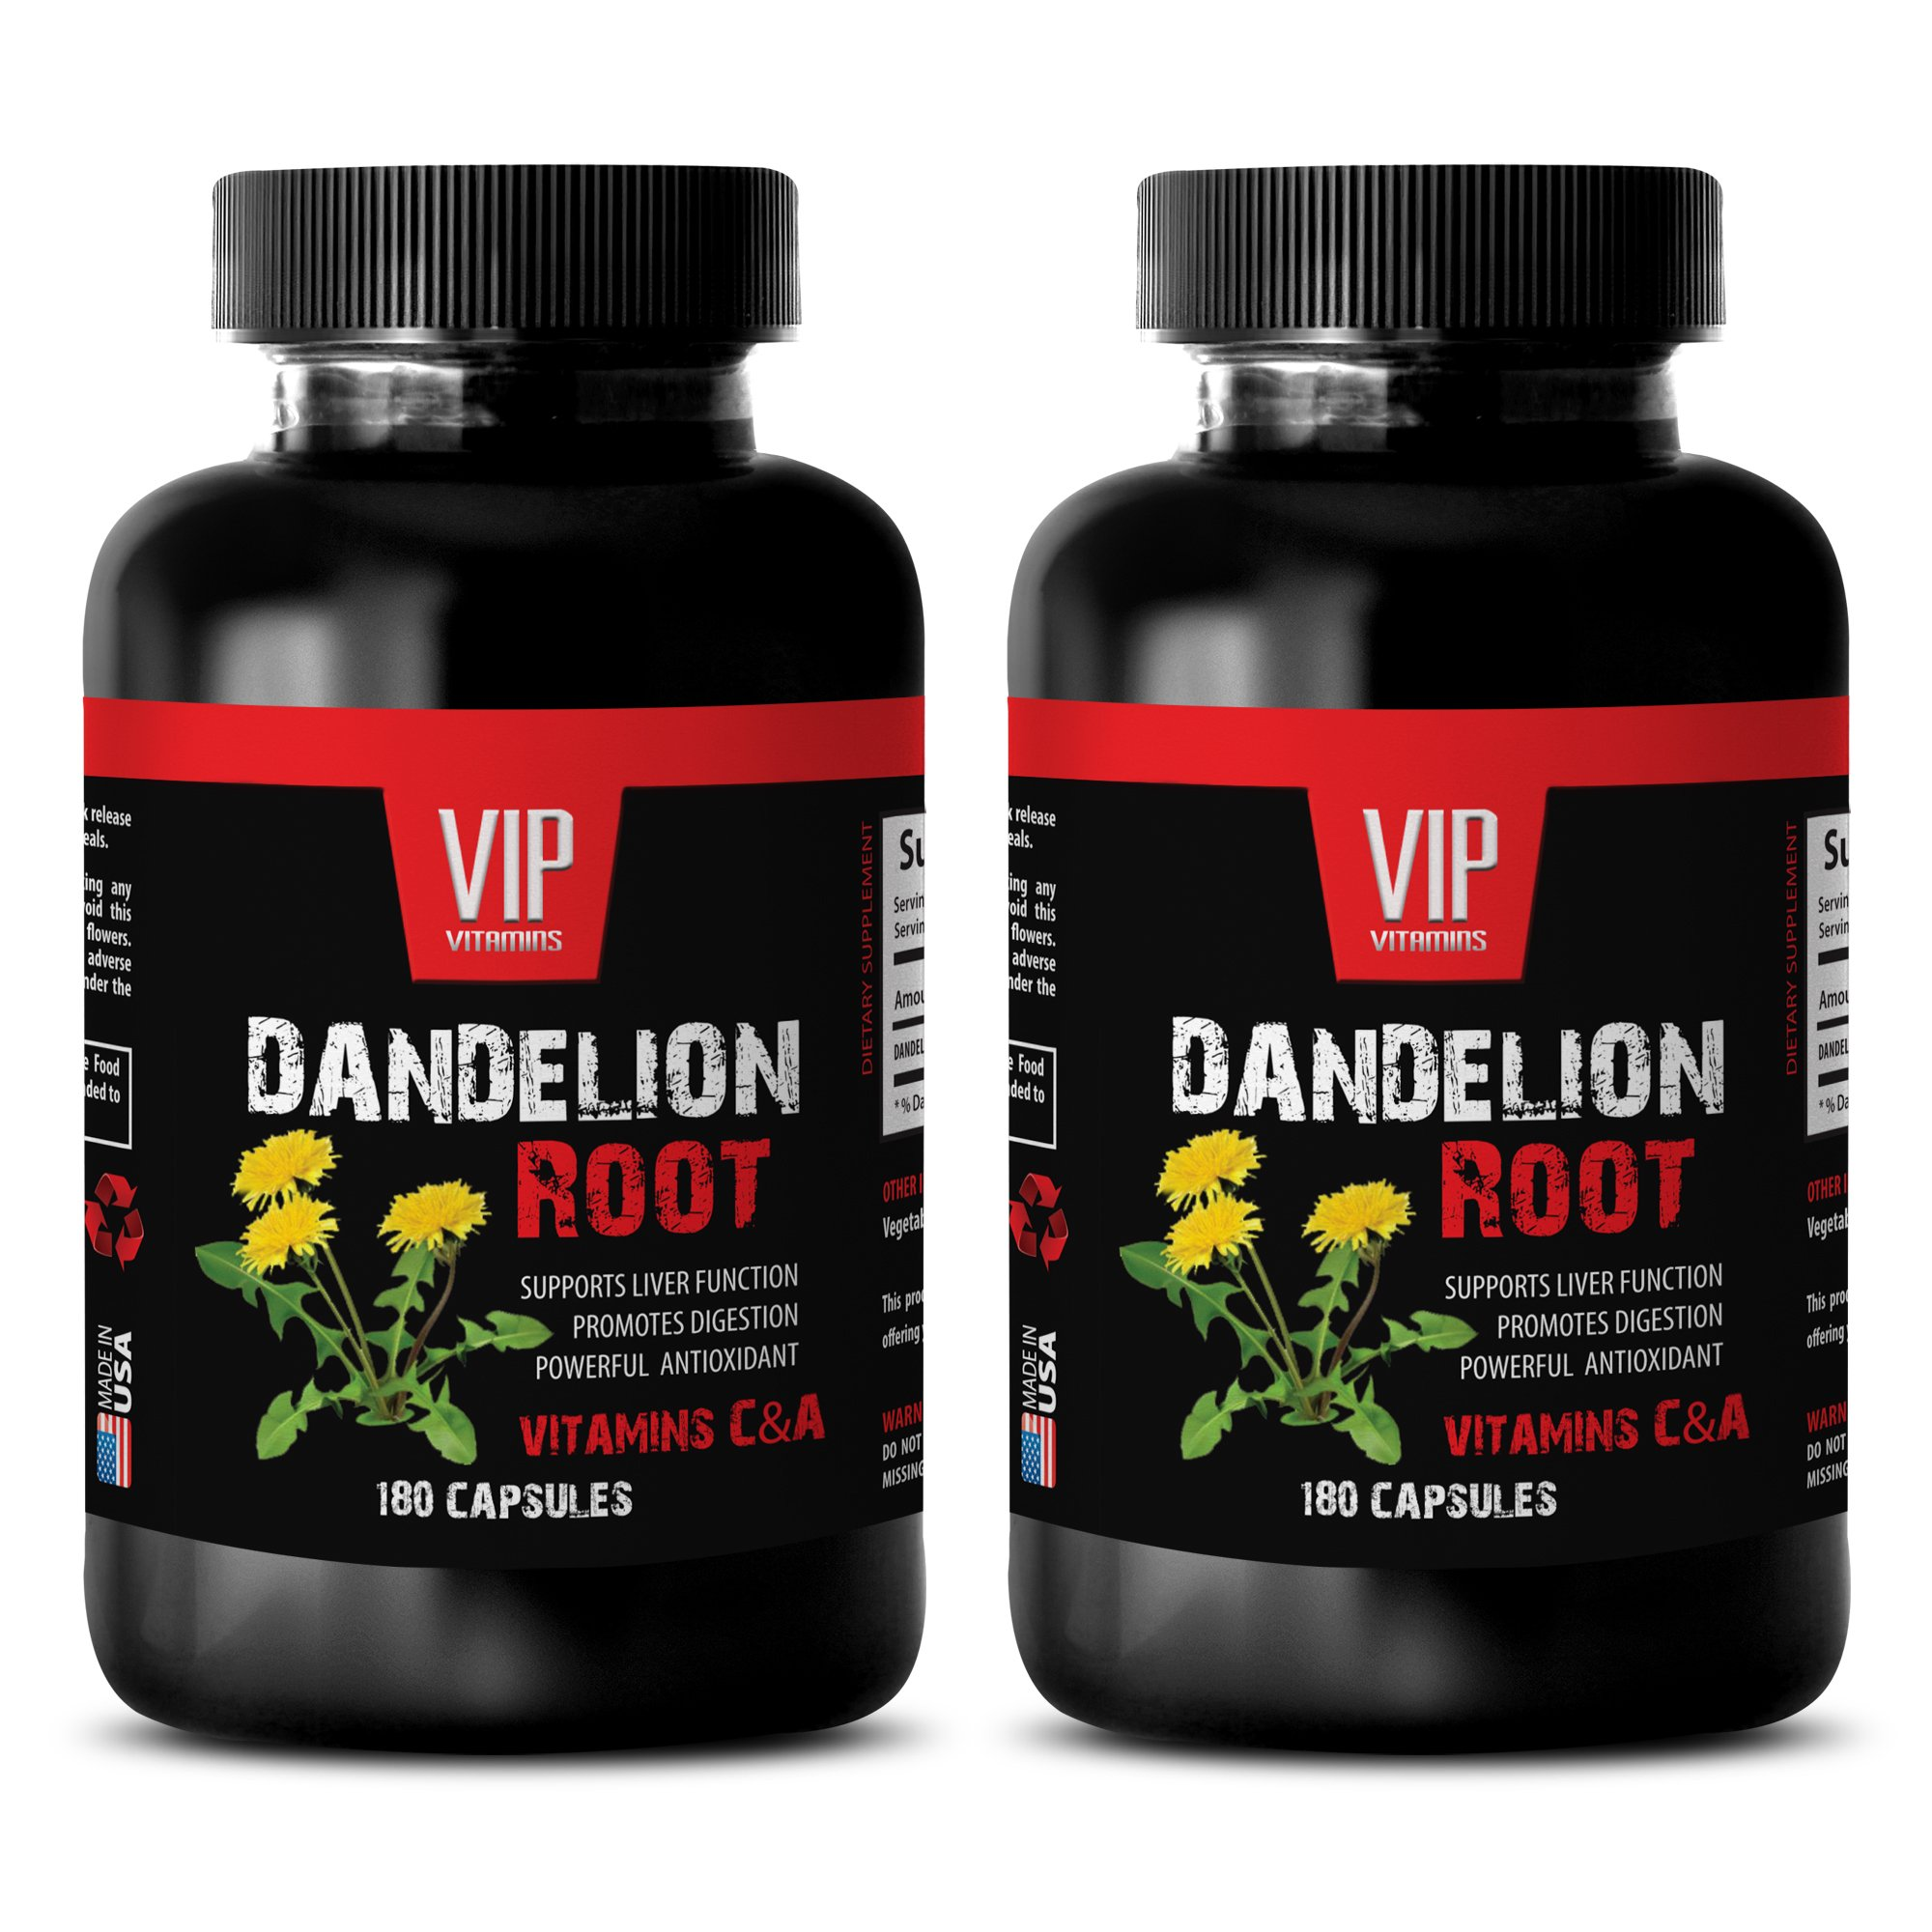 Dandelion pure extract - DANDELION ROOT EXTRACT 520Mg - Bacterial killer - 2 Bottle 360 Capsules